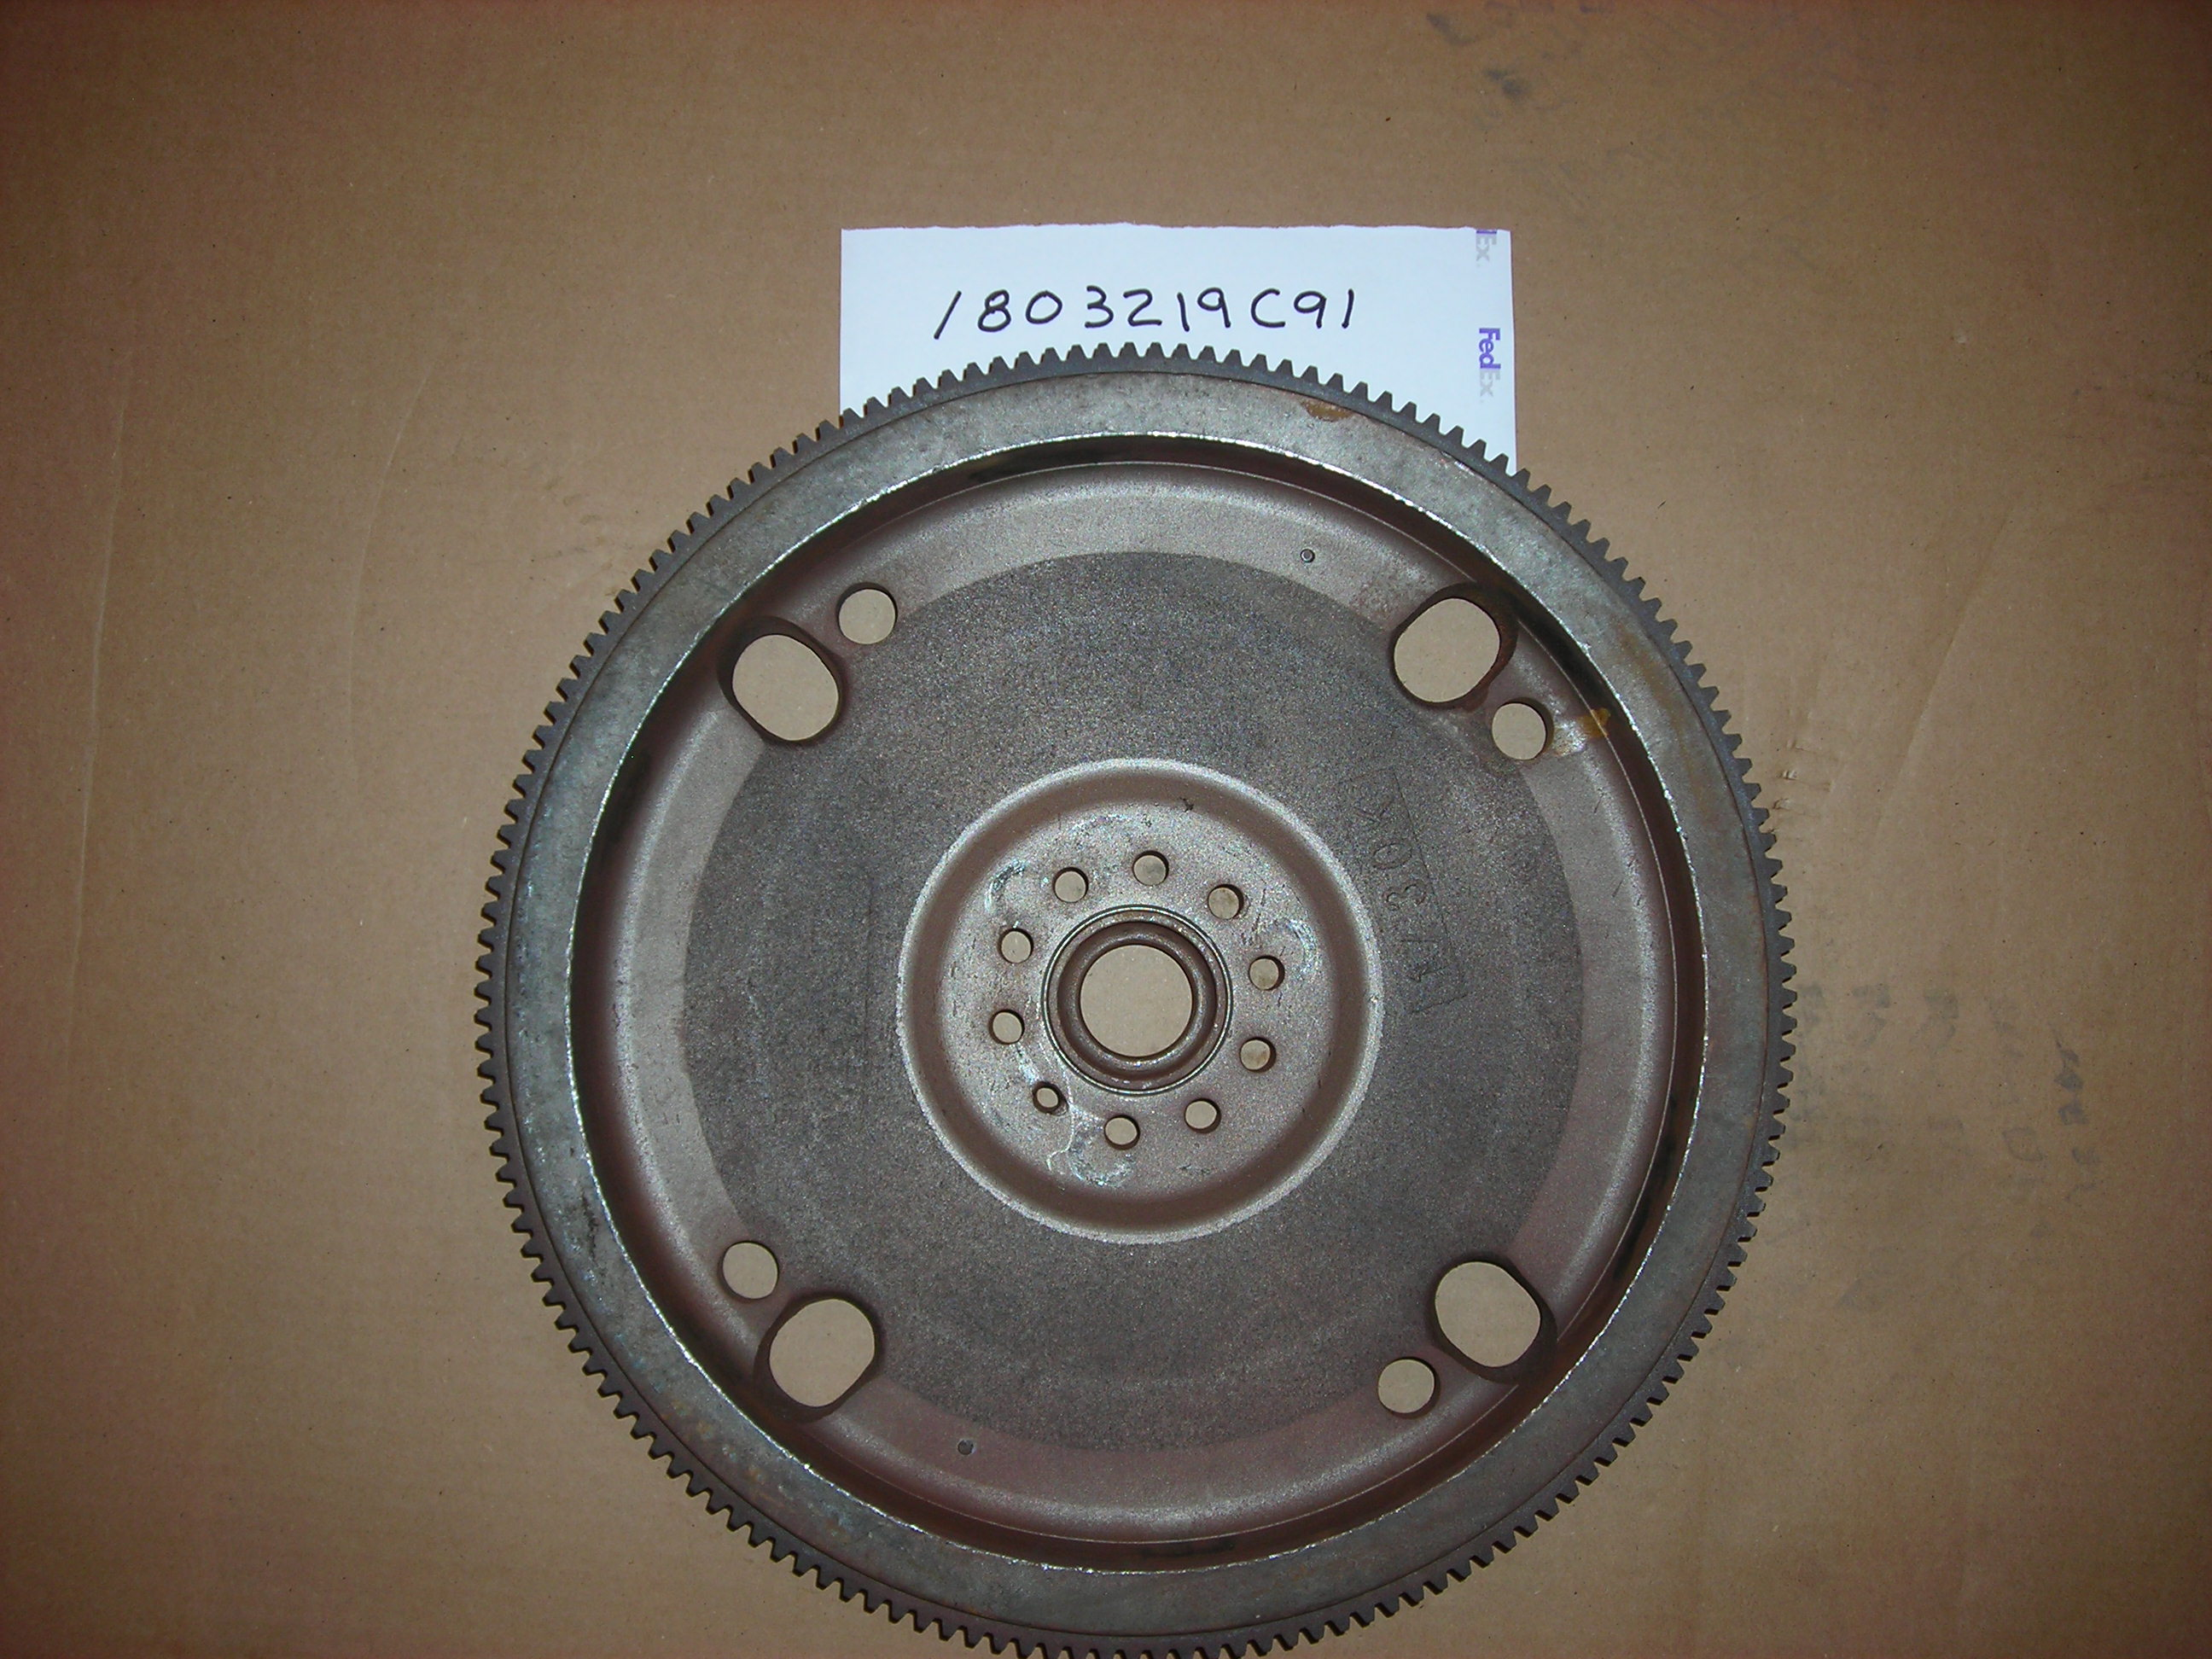 1803219C91 Navistar International Flywheel Rear